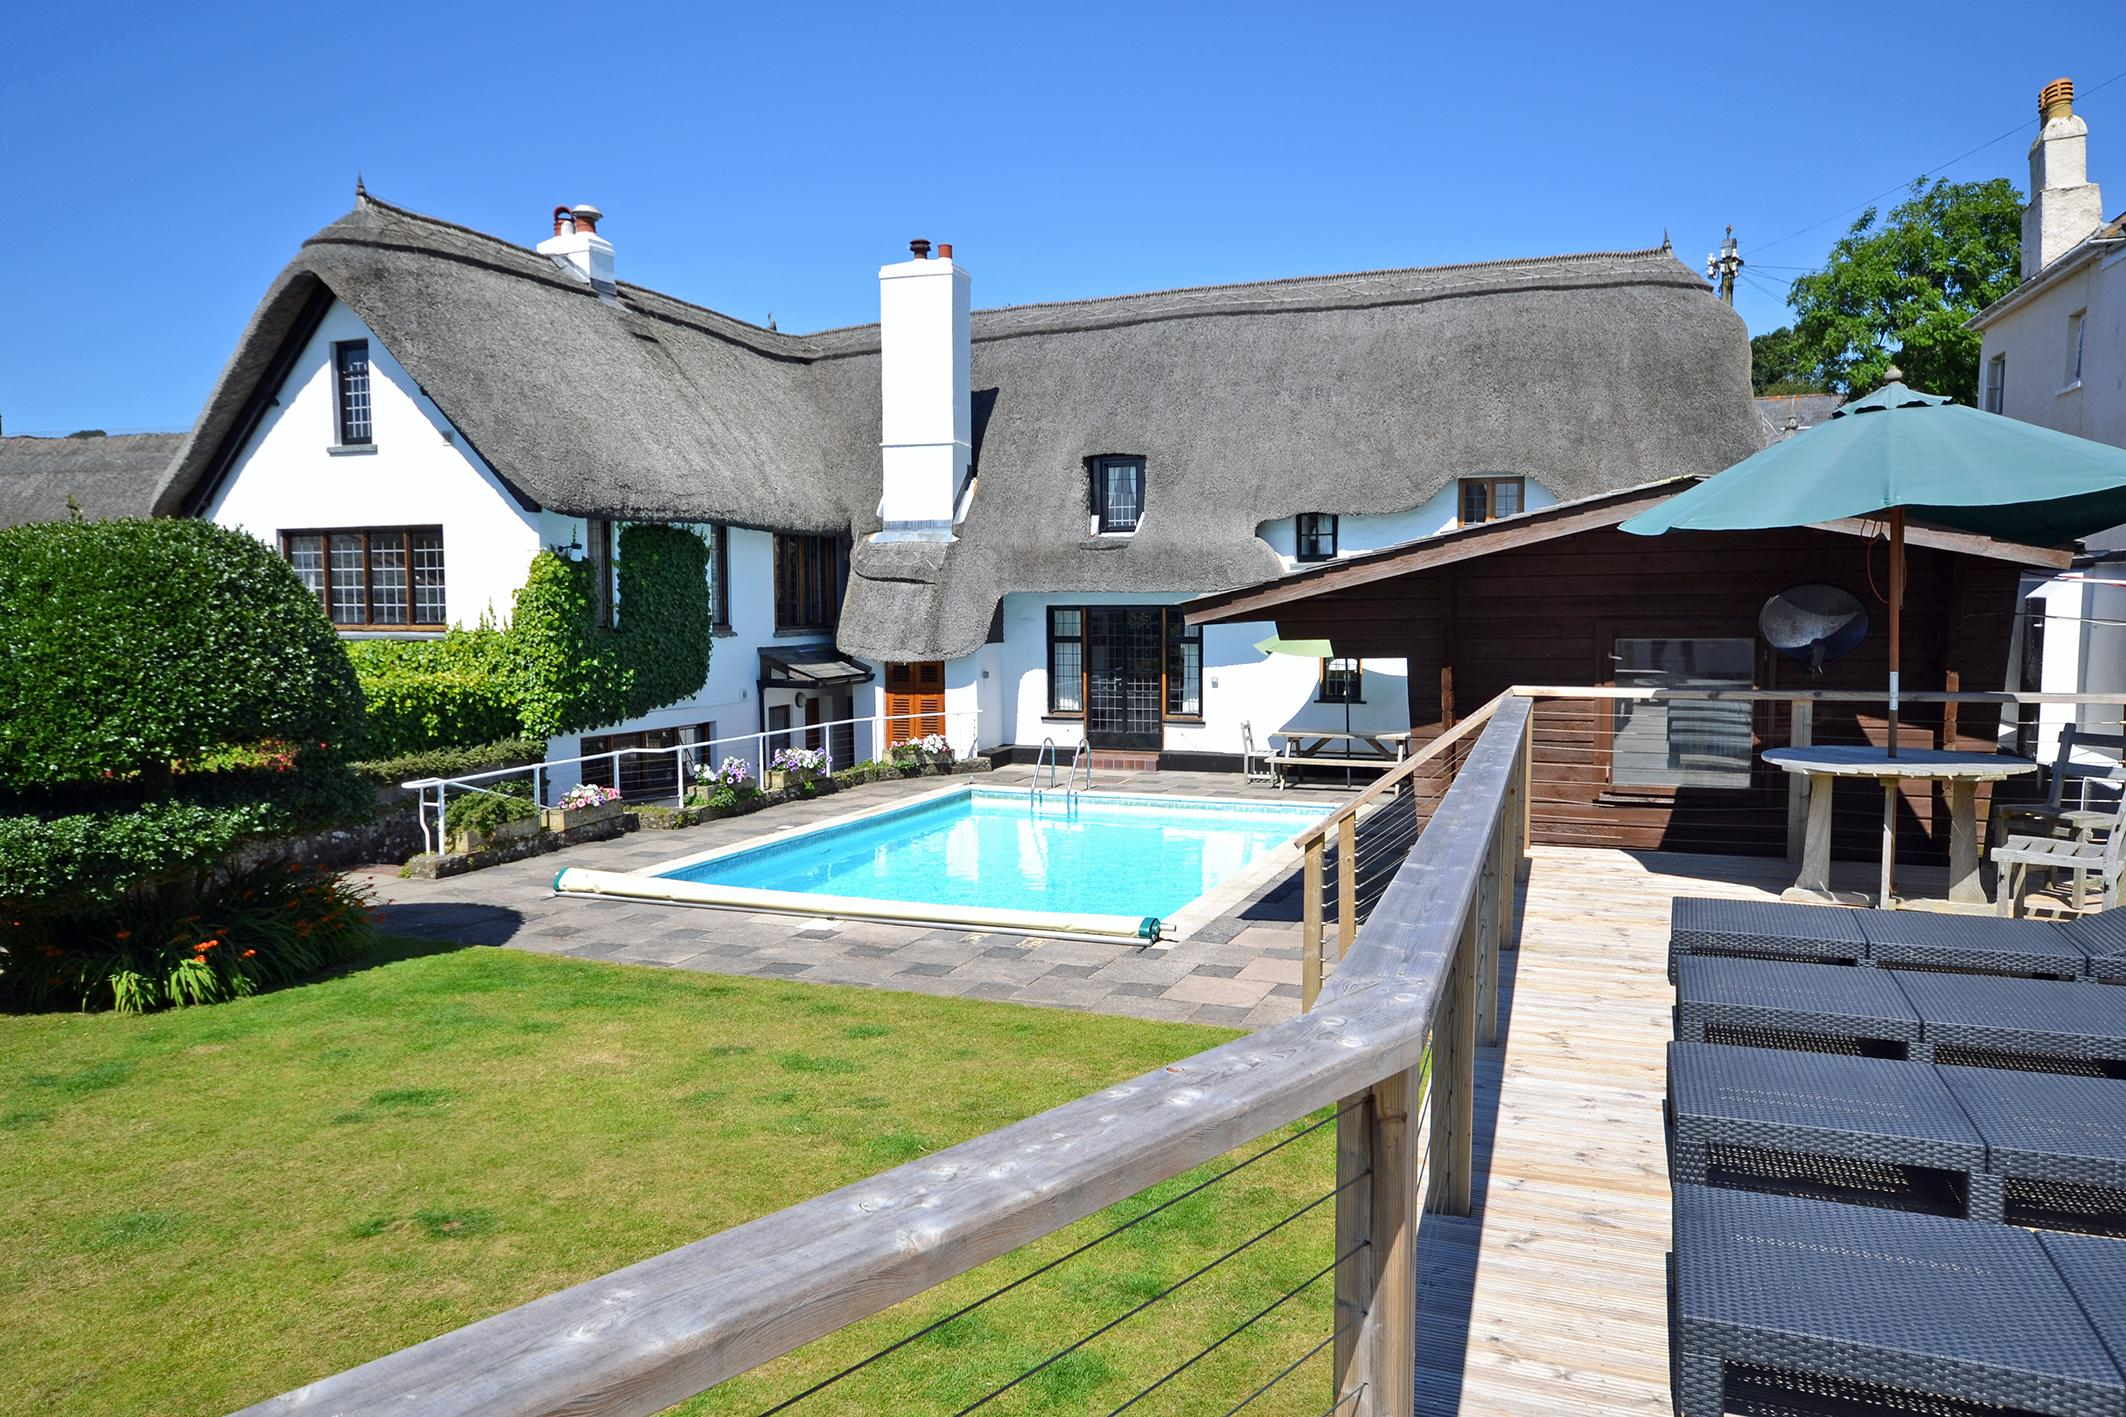 Fabulous Britains Best Holiday Cottages With Pools The Independent Download Free Architecture Designs Embacsunscenecom